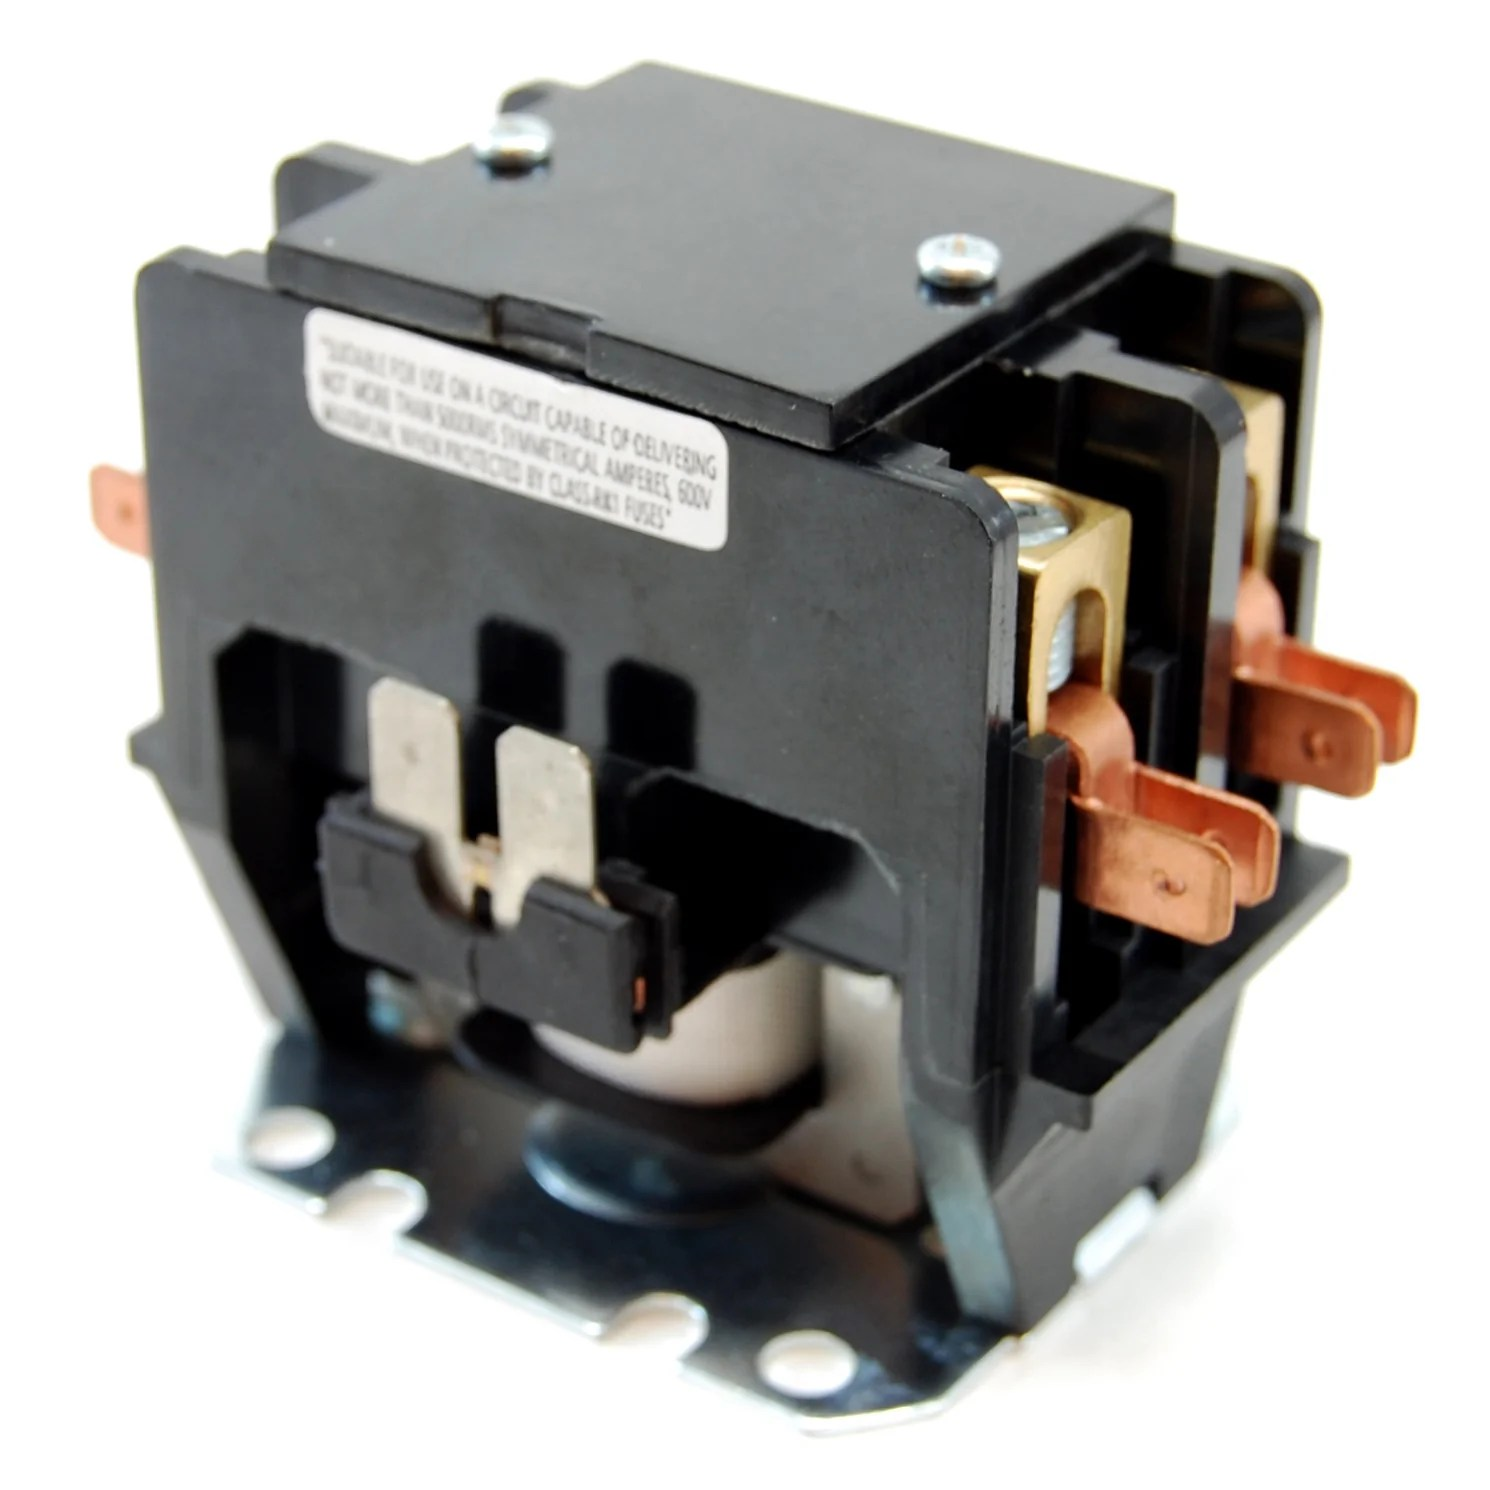 50a 250v dpst contactor 220 240v ac coil the electric brewery 240v contactor wiring  [ 1490 x 1490 Pixel ]